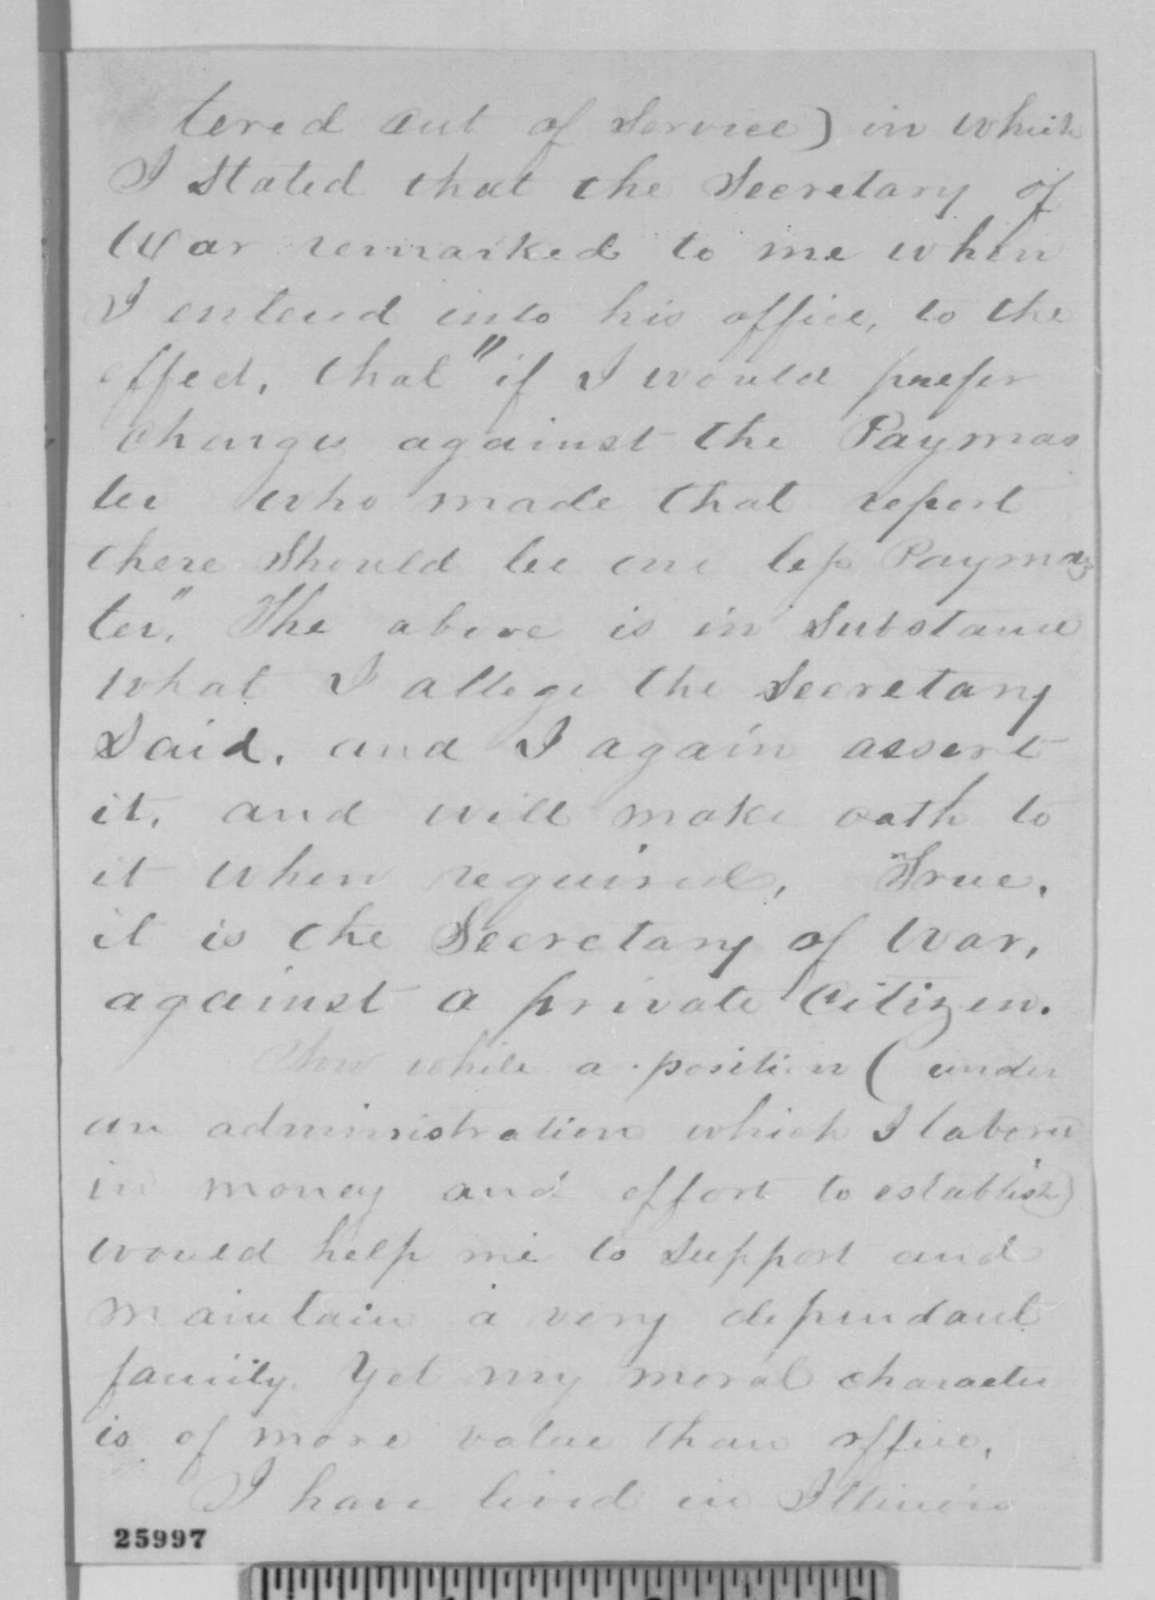 Richard O. Warinner to Abraham Lincoln, Wednesday, September 02, 1863  (Statements made concerning loyalty of Frank Orme)